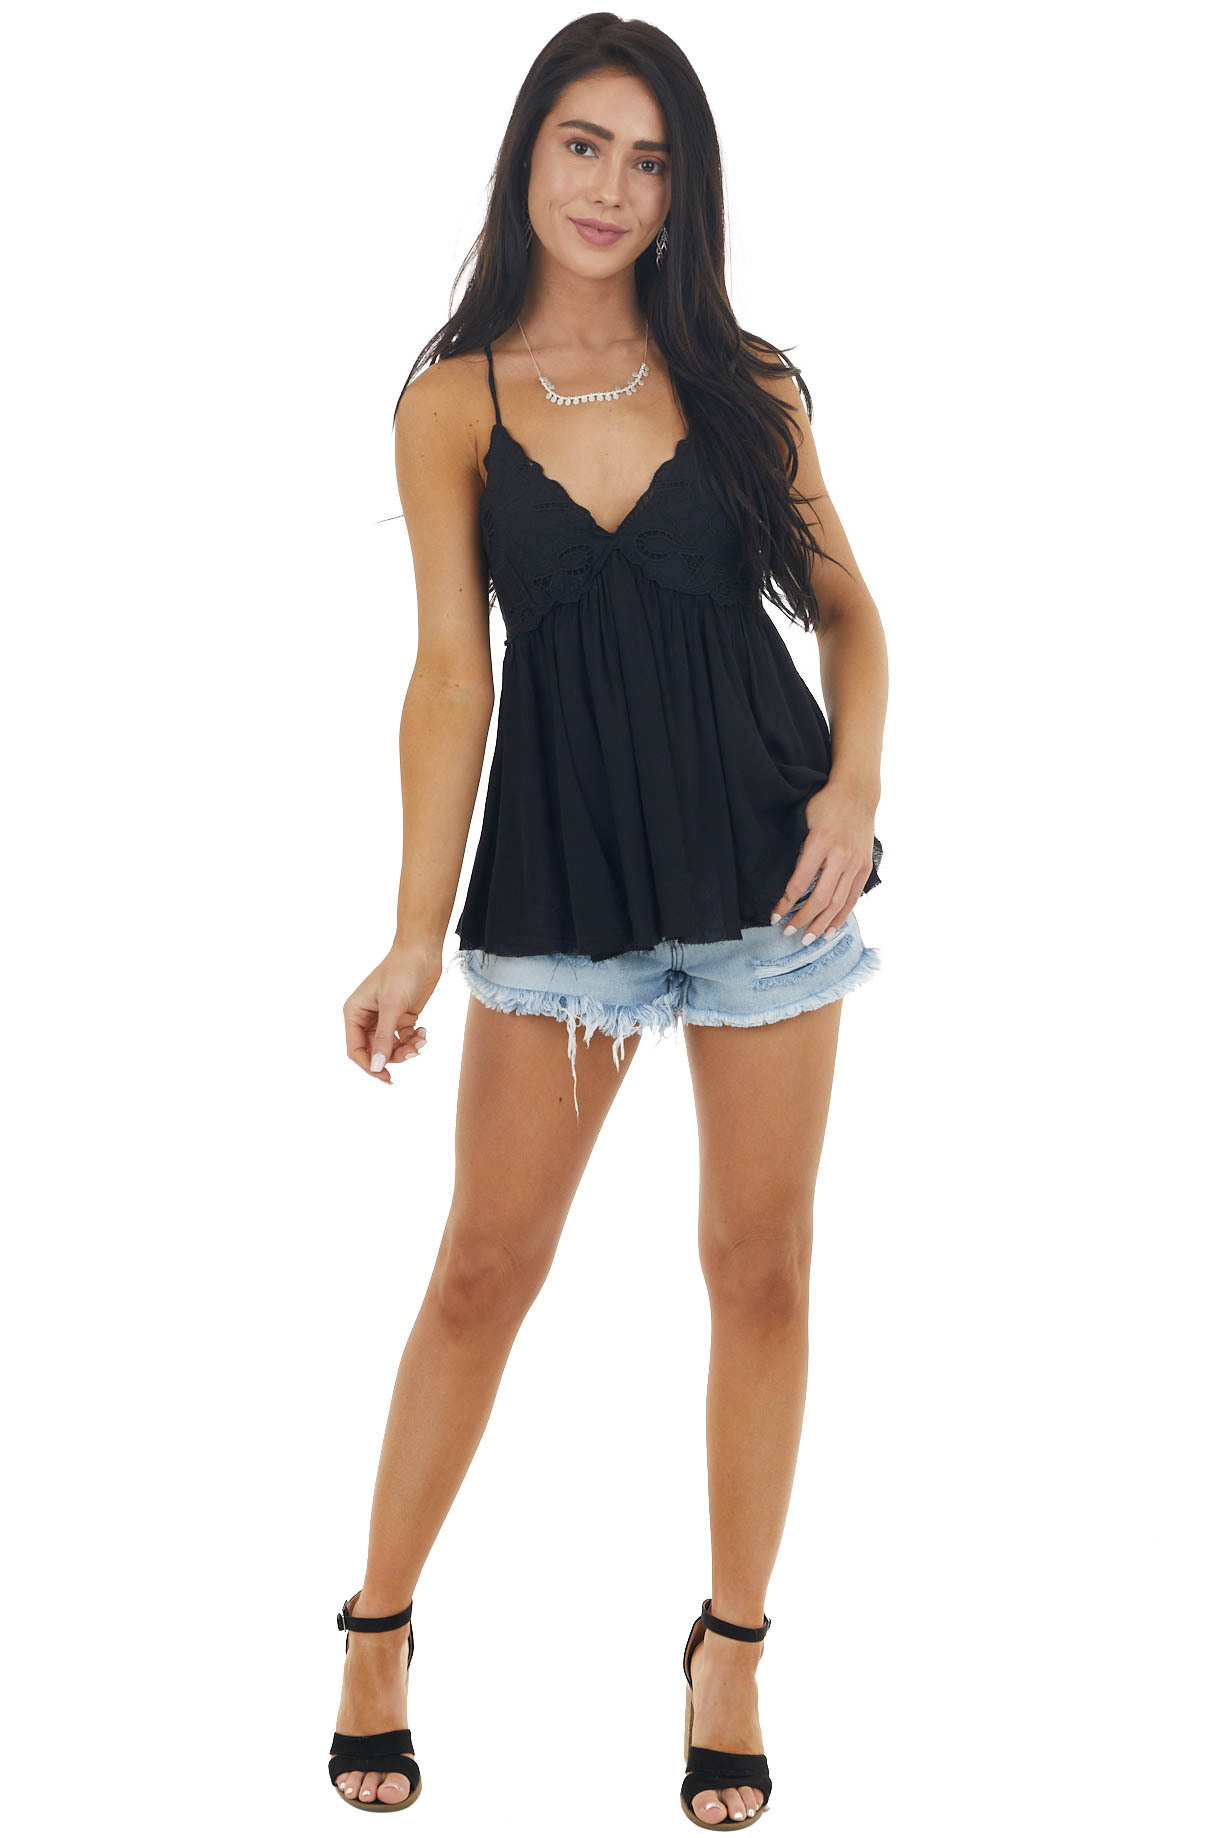 Black Lace Sleeveless Babydoll Top with Crisscross Straps